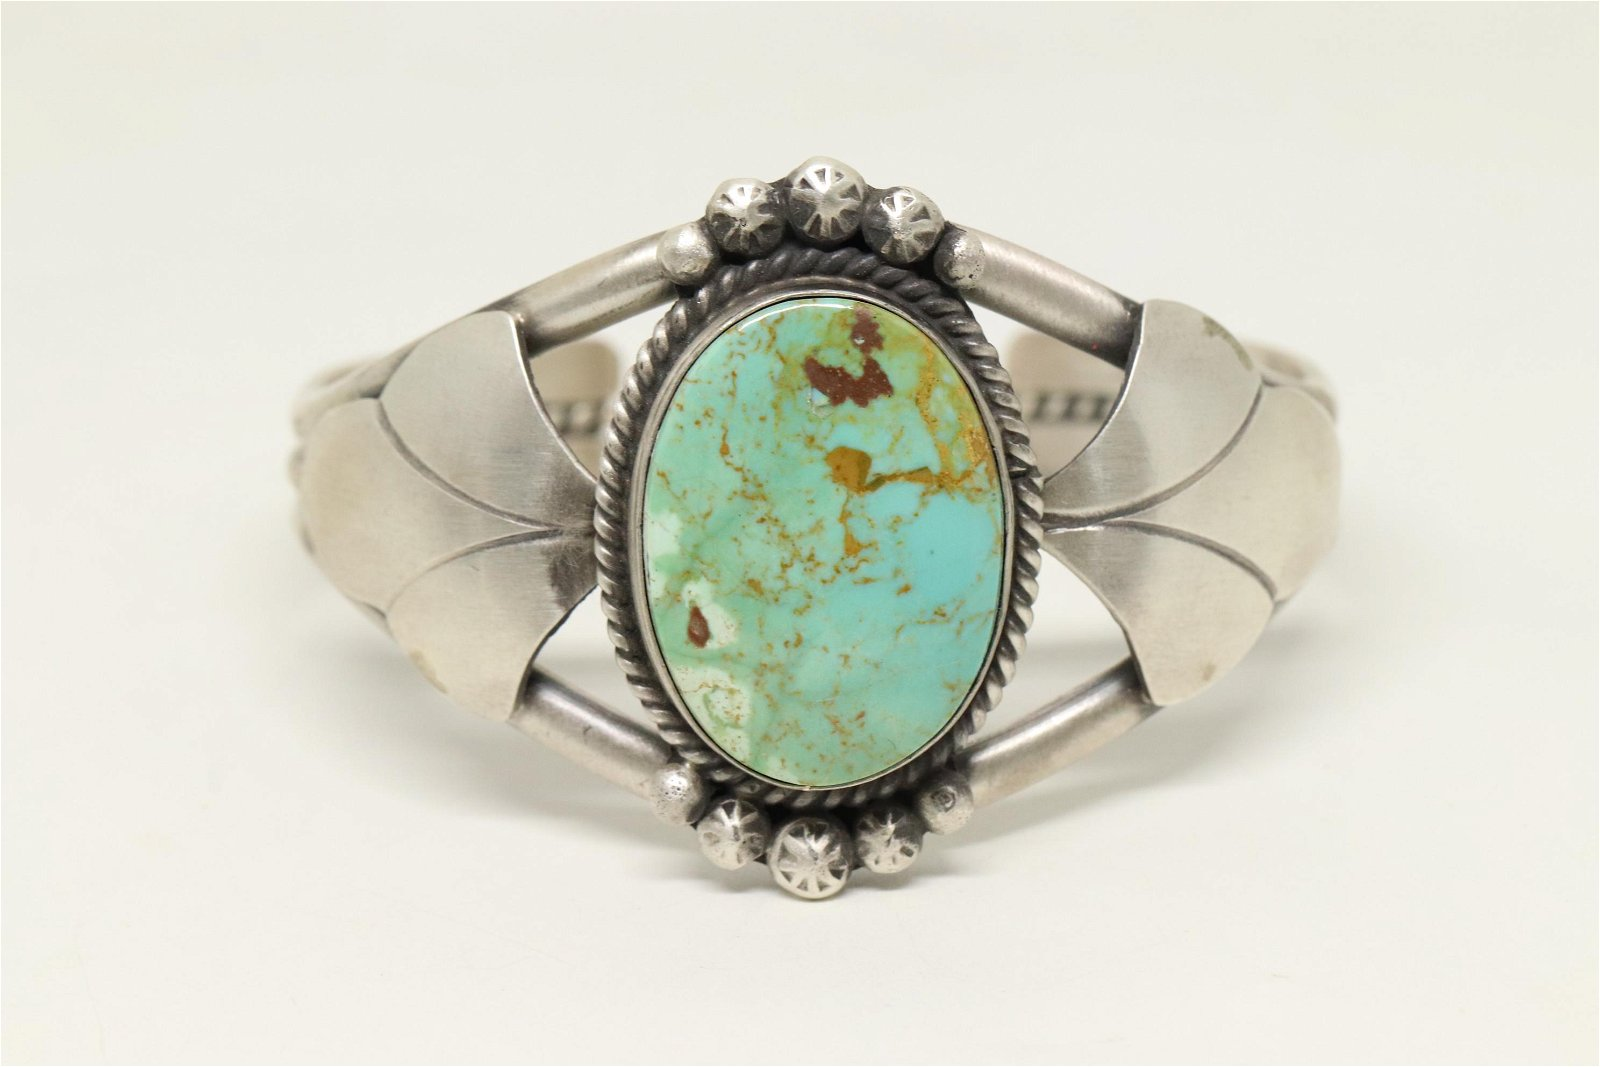 Augustine Largo Navajo Turquoise and Sterling Silver